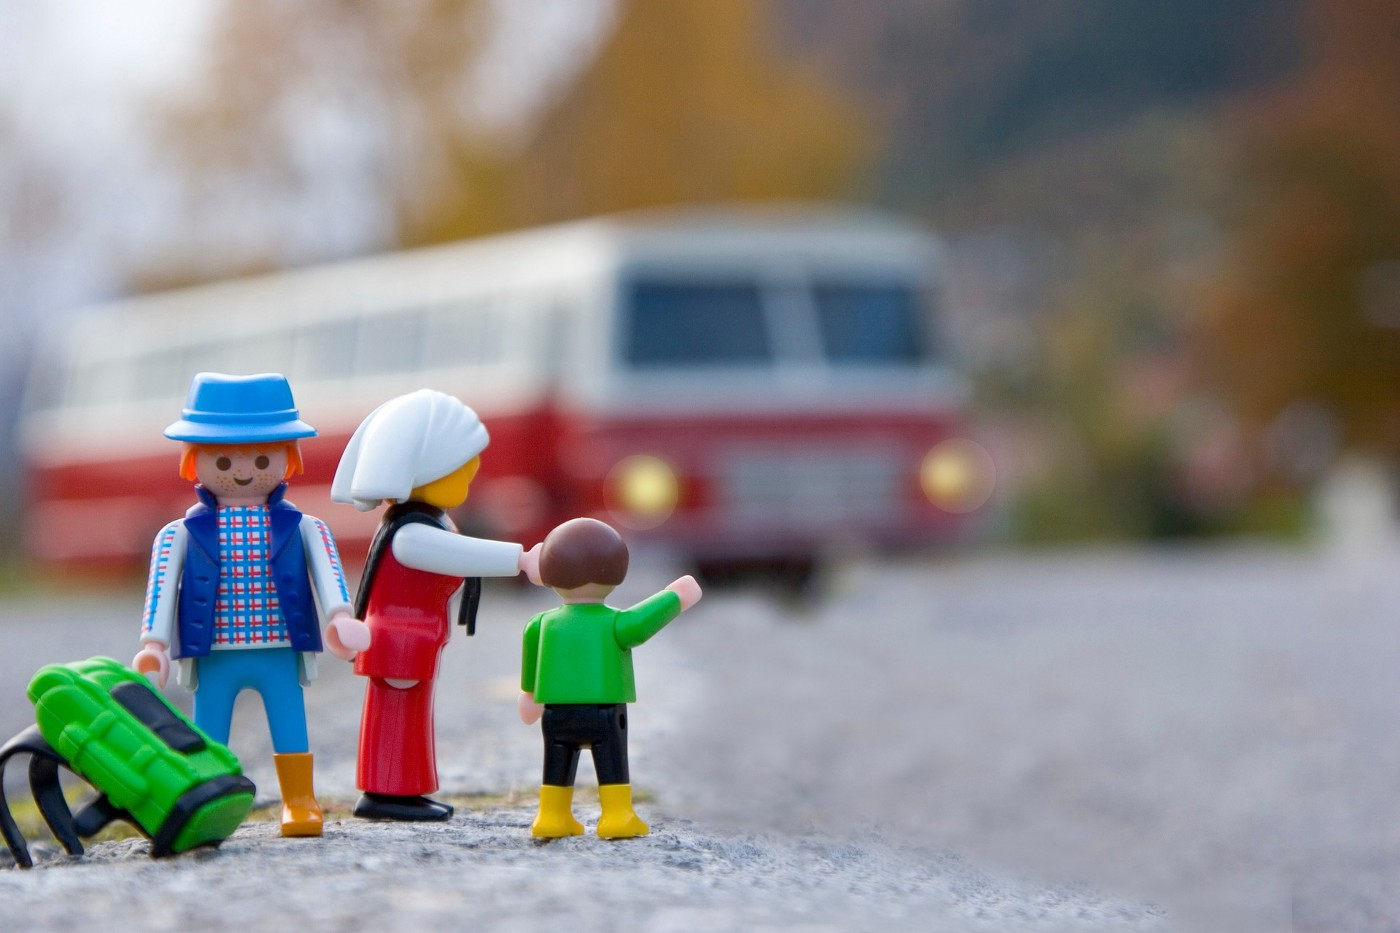 Photo of toy parents and child waiting for a bus